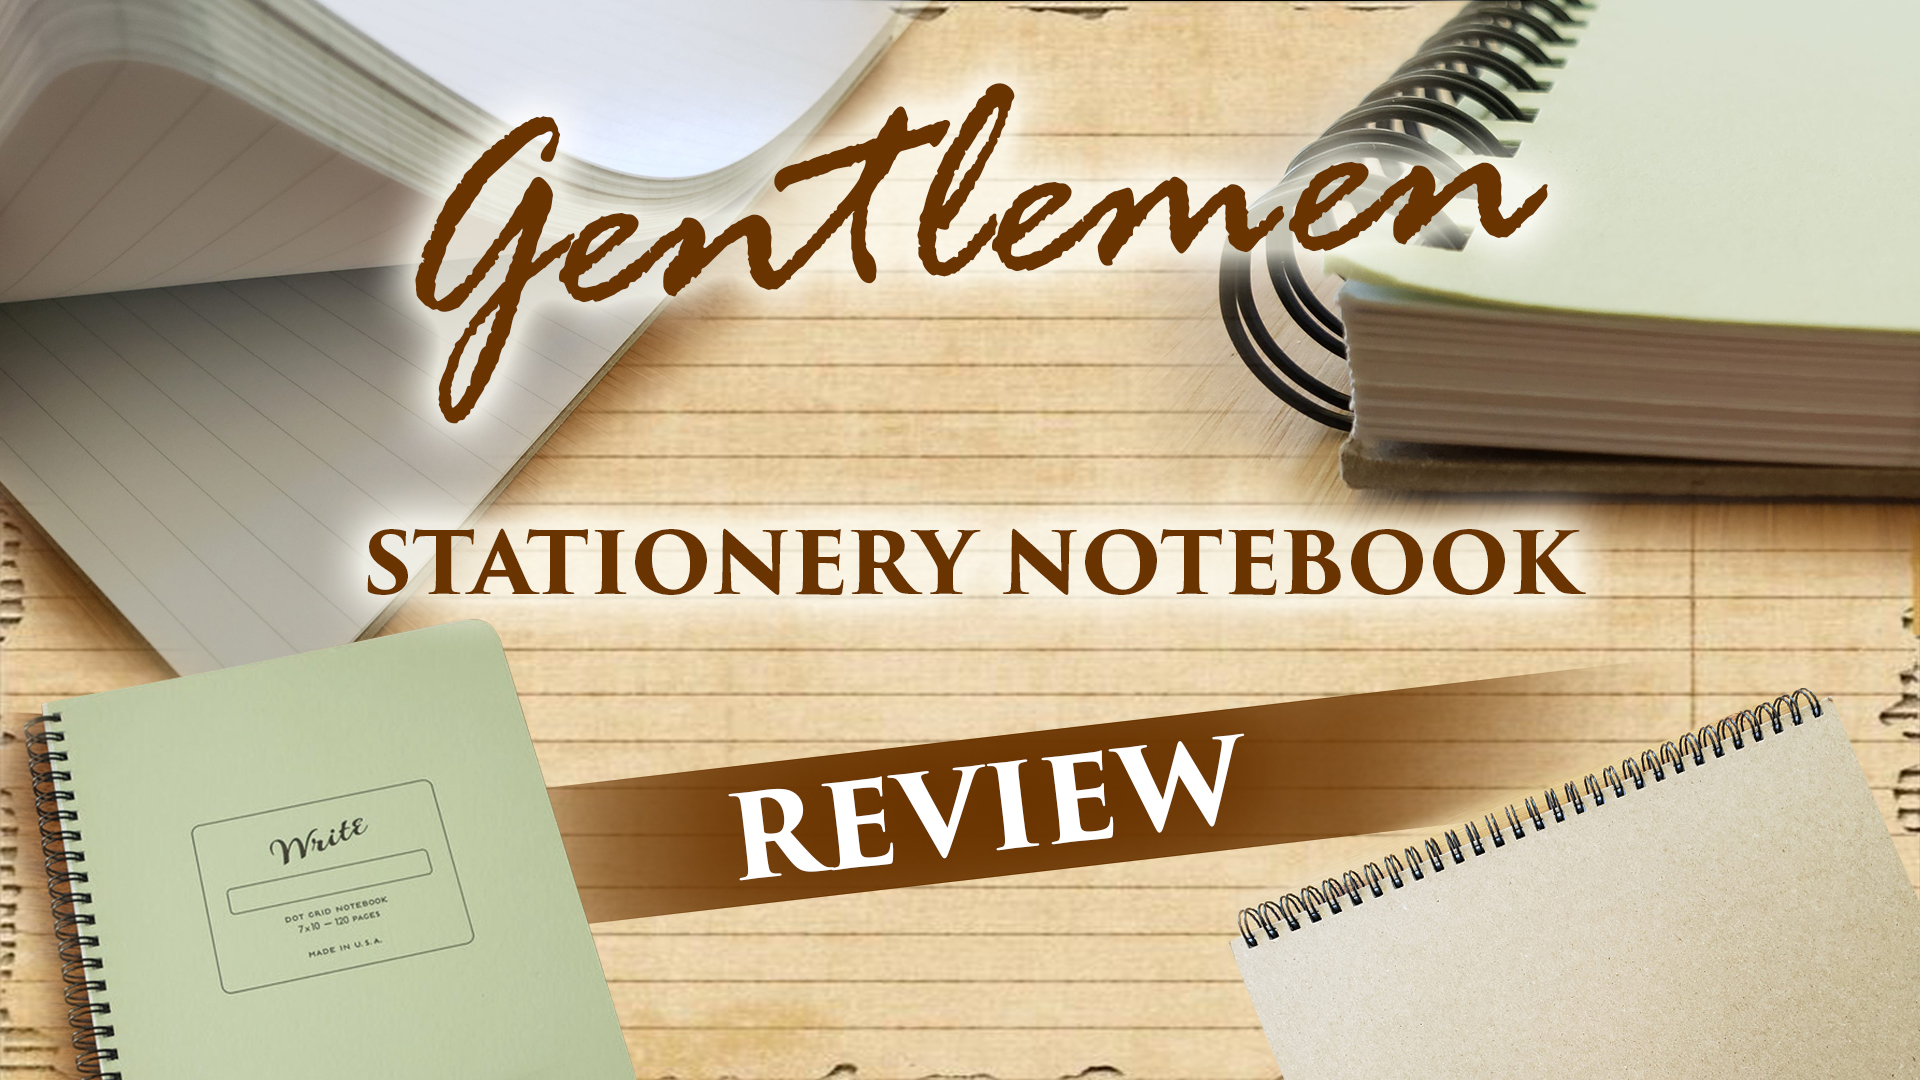 Gentlemen Stationery Notebook Review